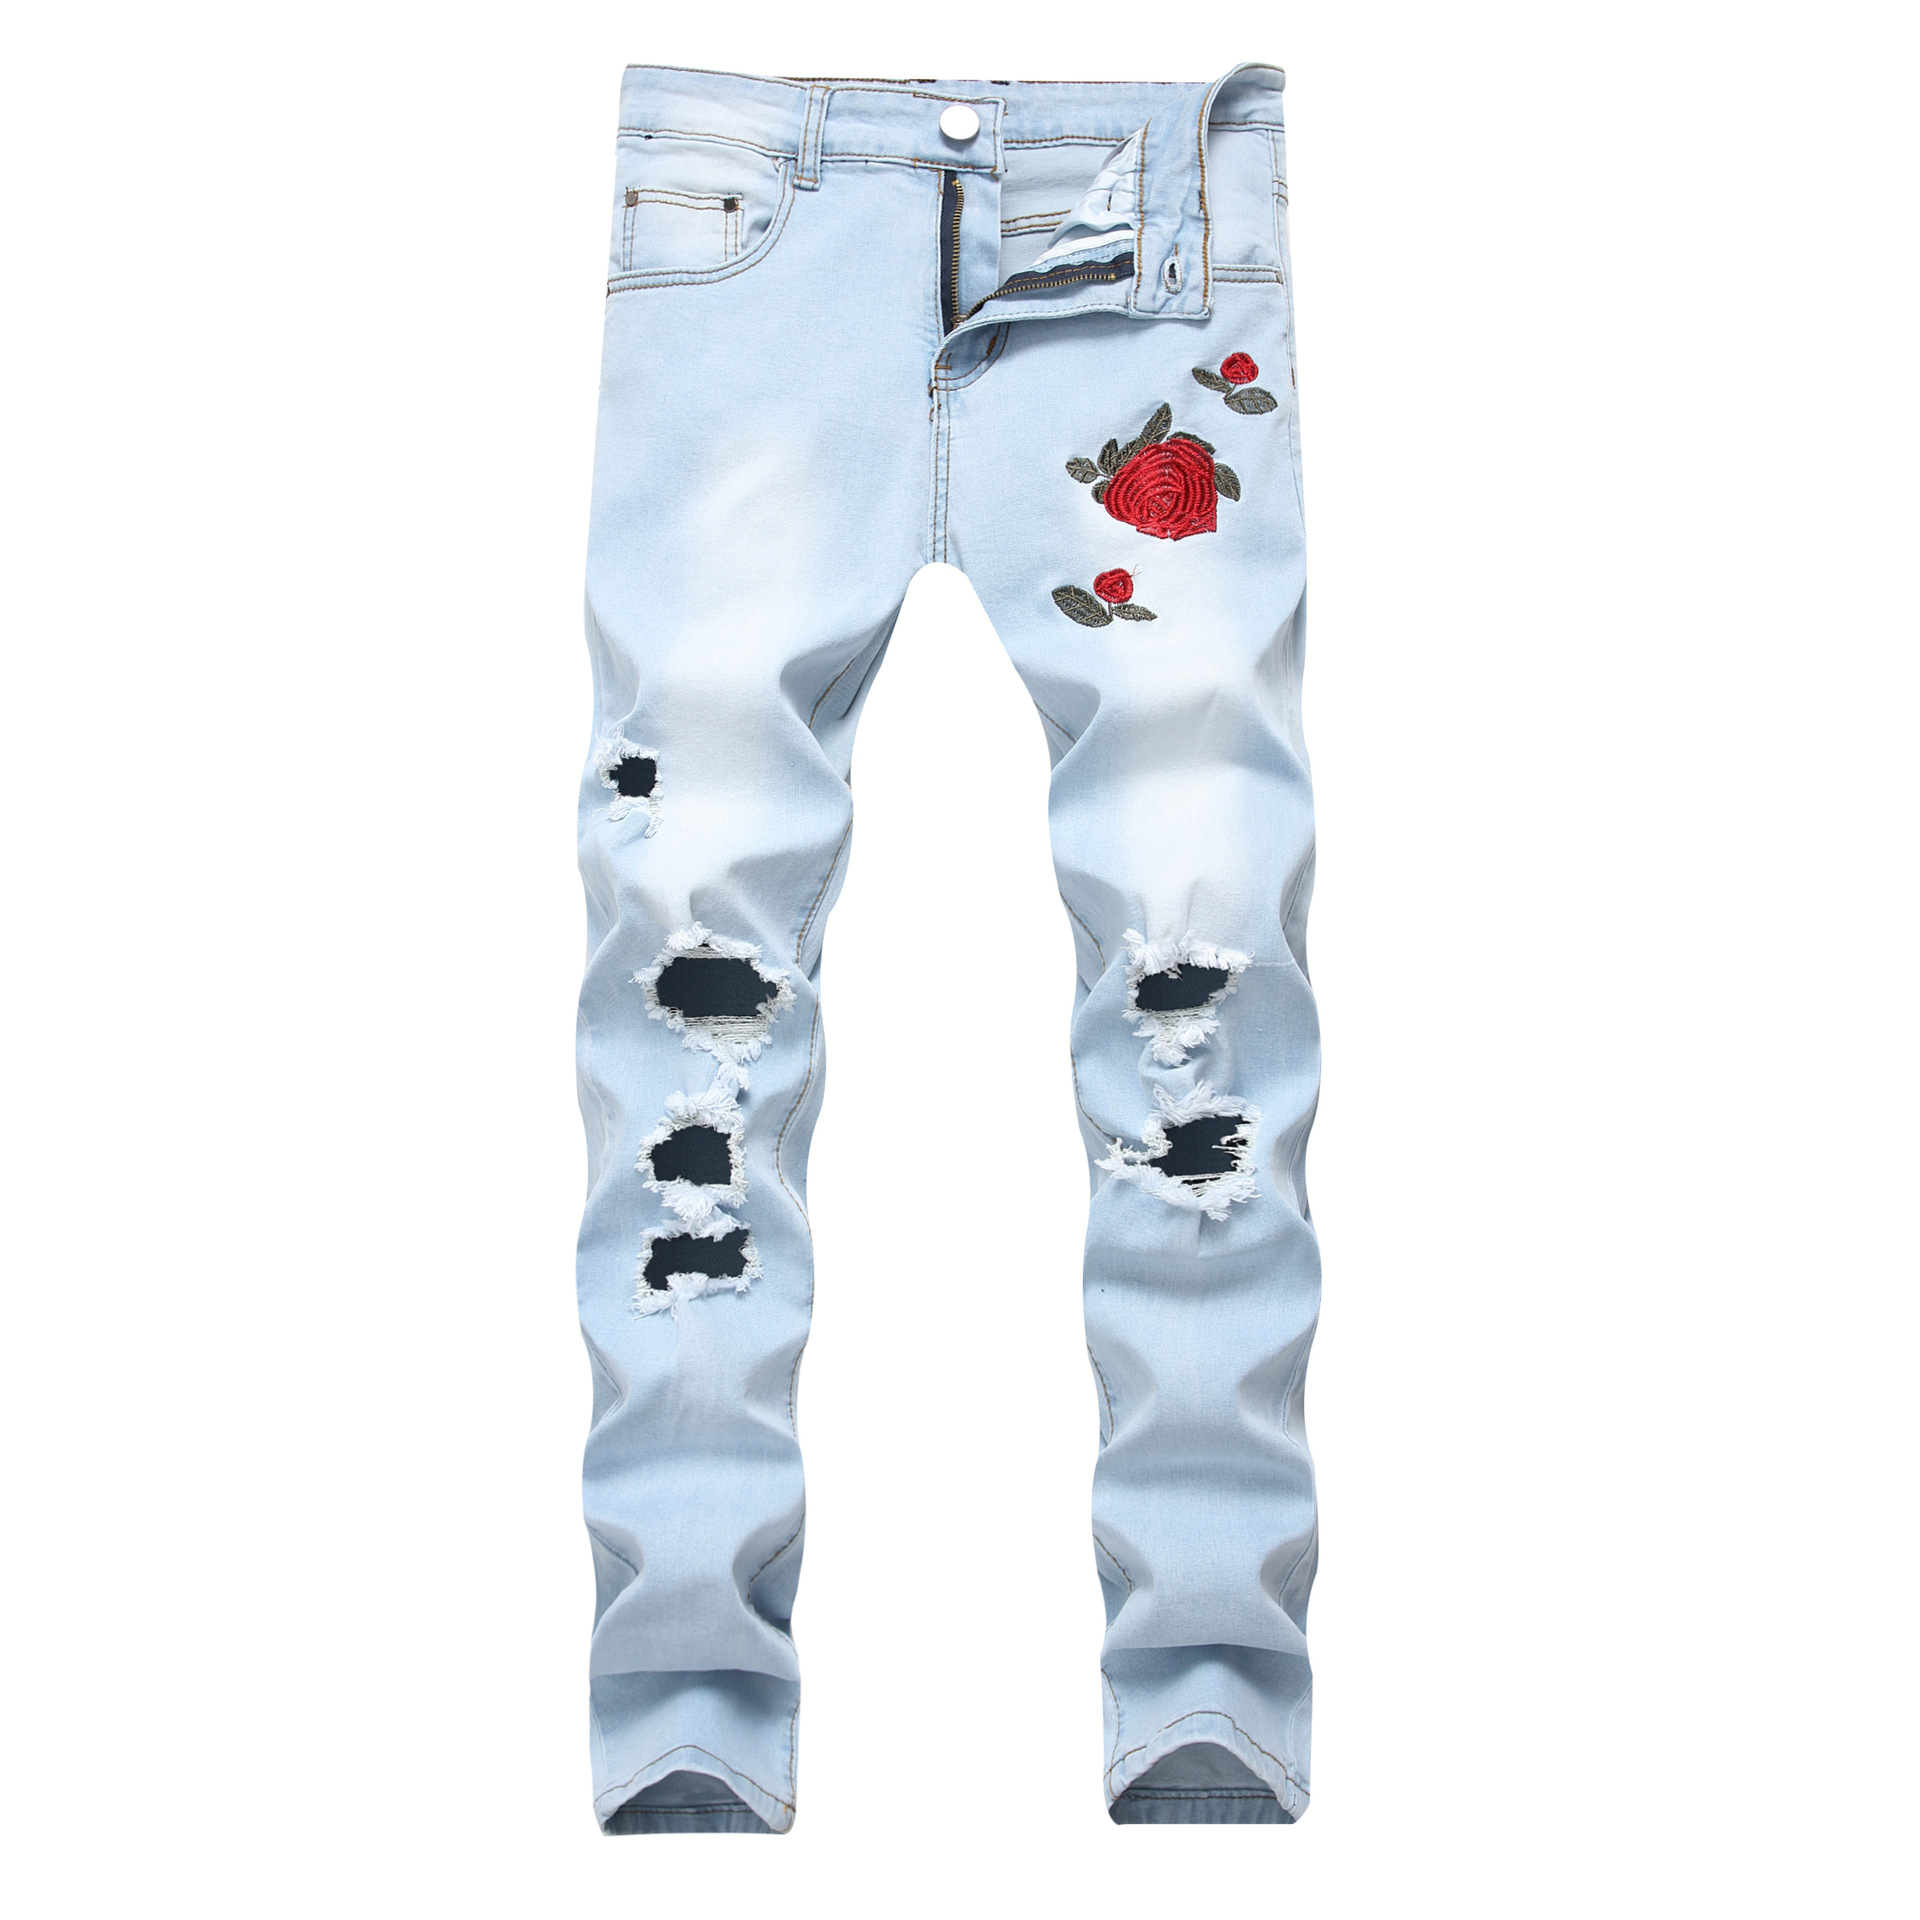 Elastic Trousers Rose-Jeans Long-Pants Streetwear Slim Men's Fashionable New-Arrival